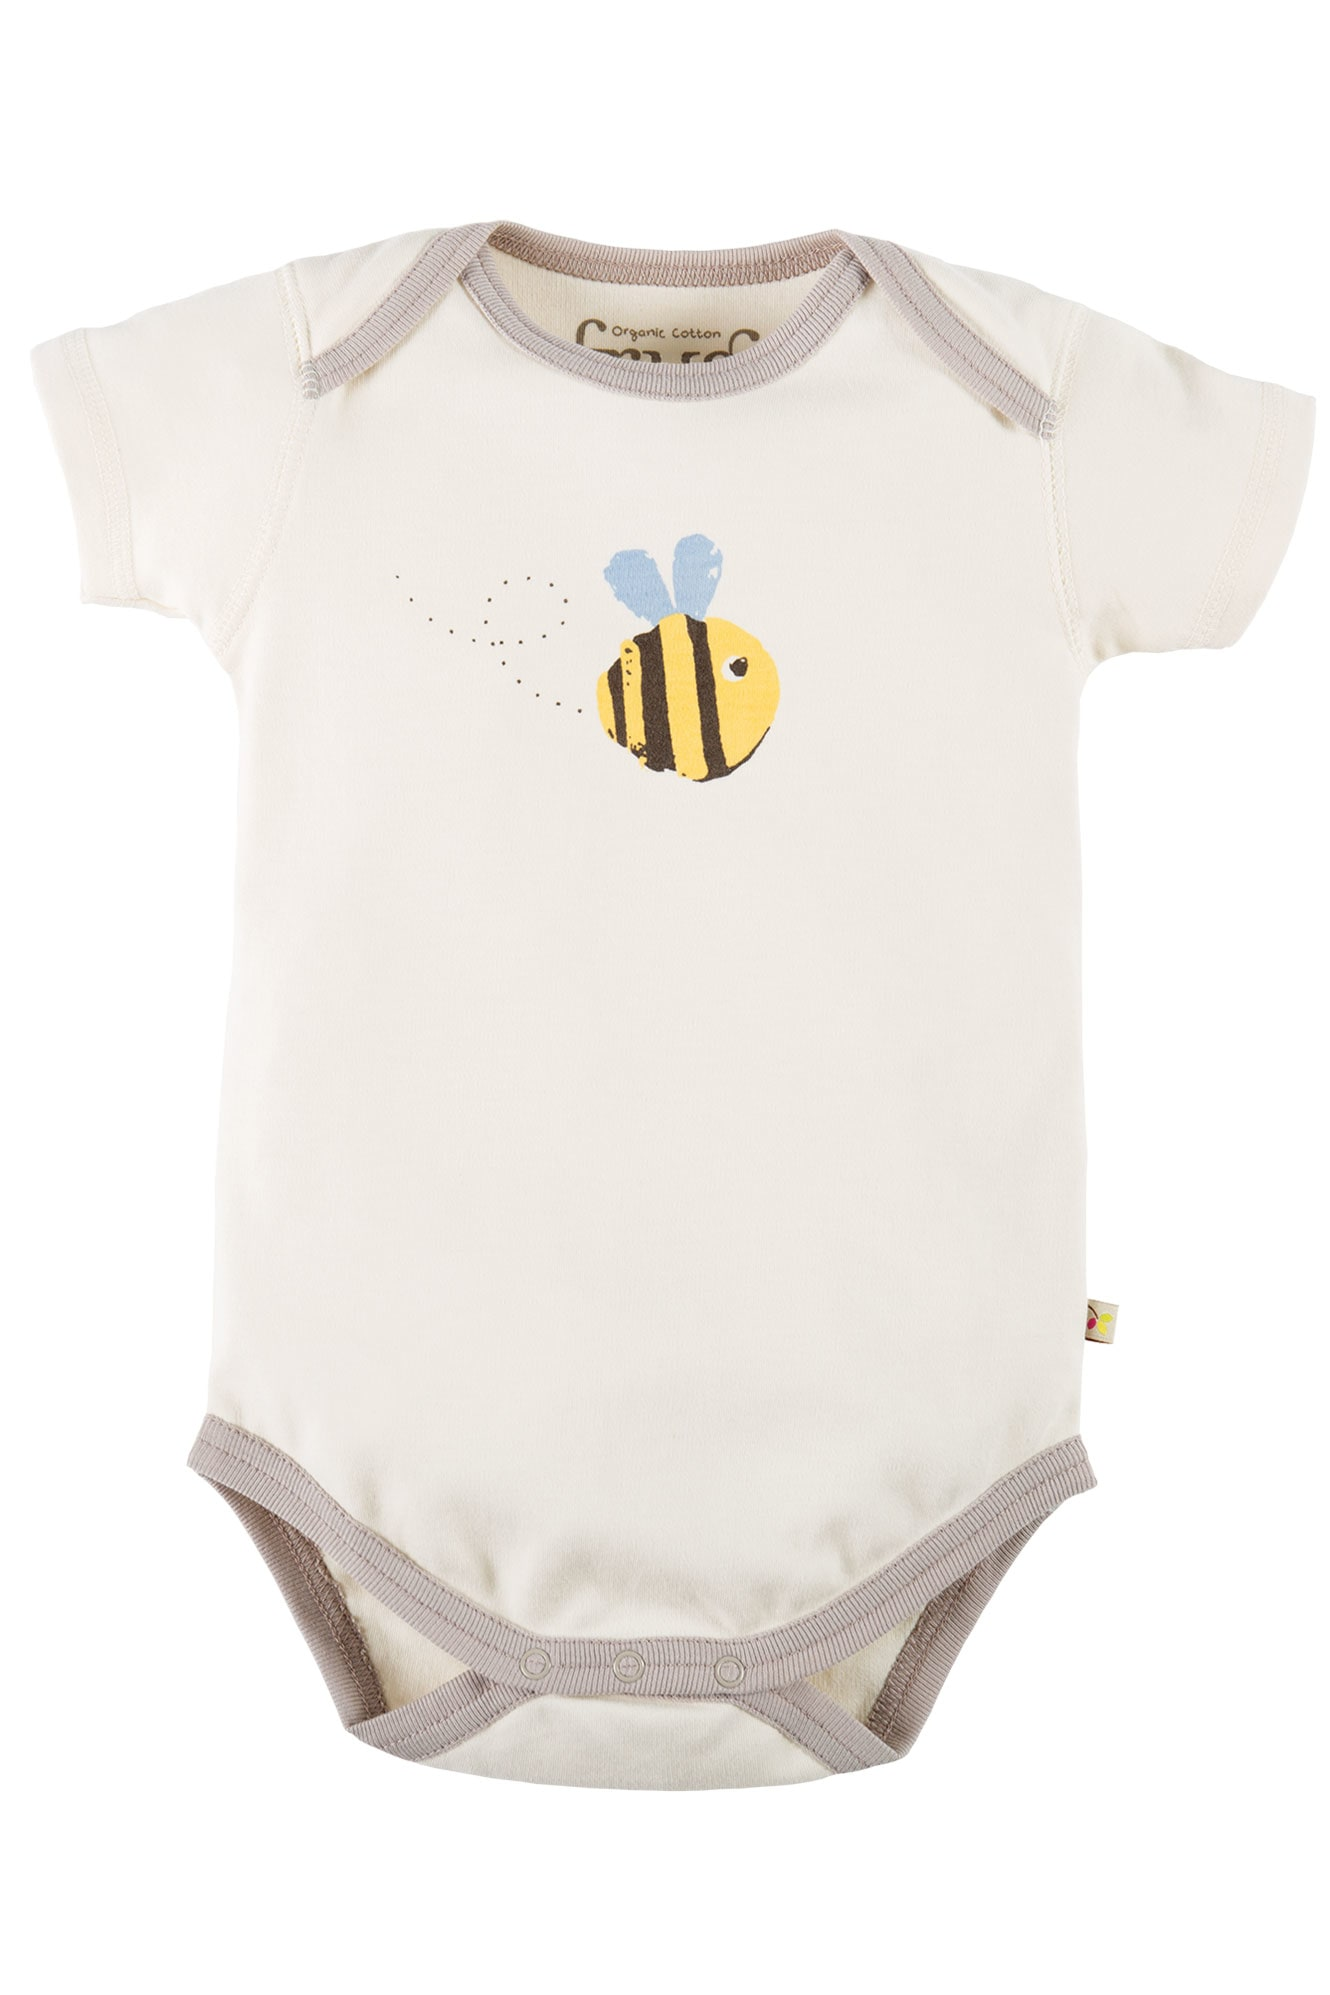 Stockists of Buzzy Bee Body